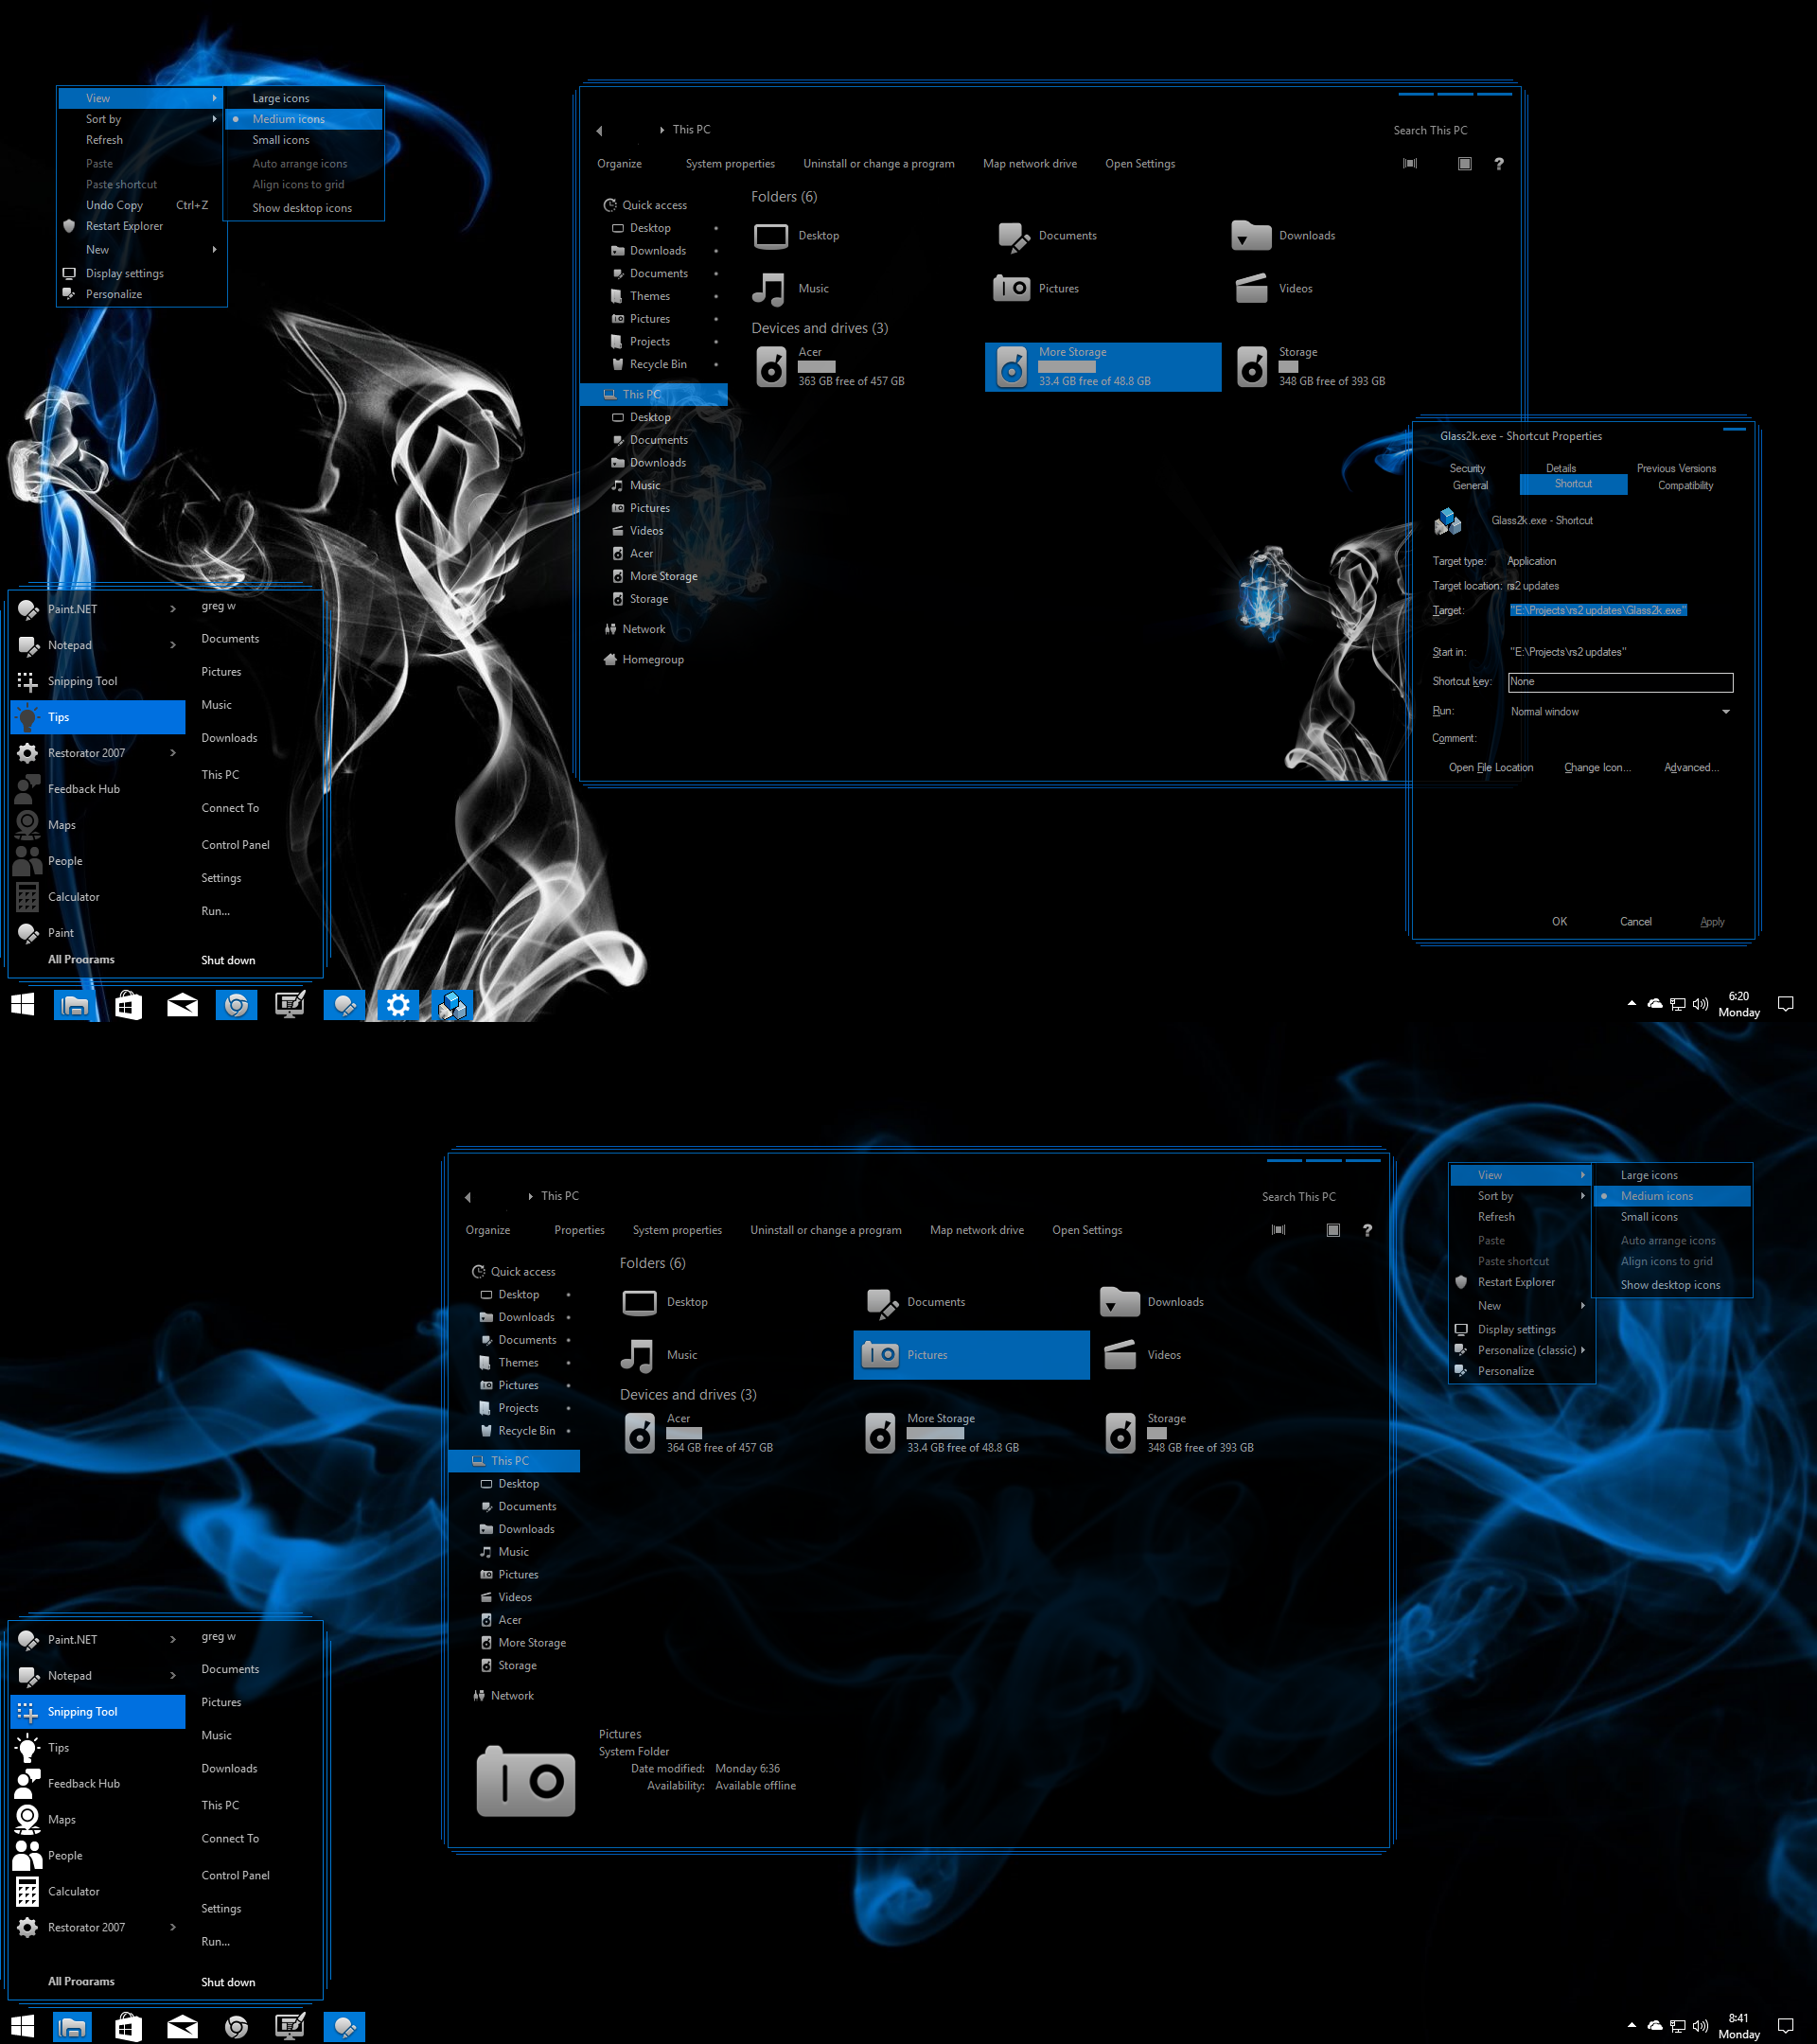 Ghostly Blue for Windows 10 Build 1903-21h2